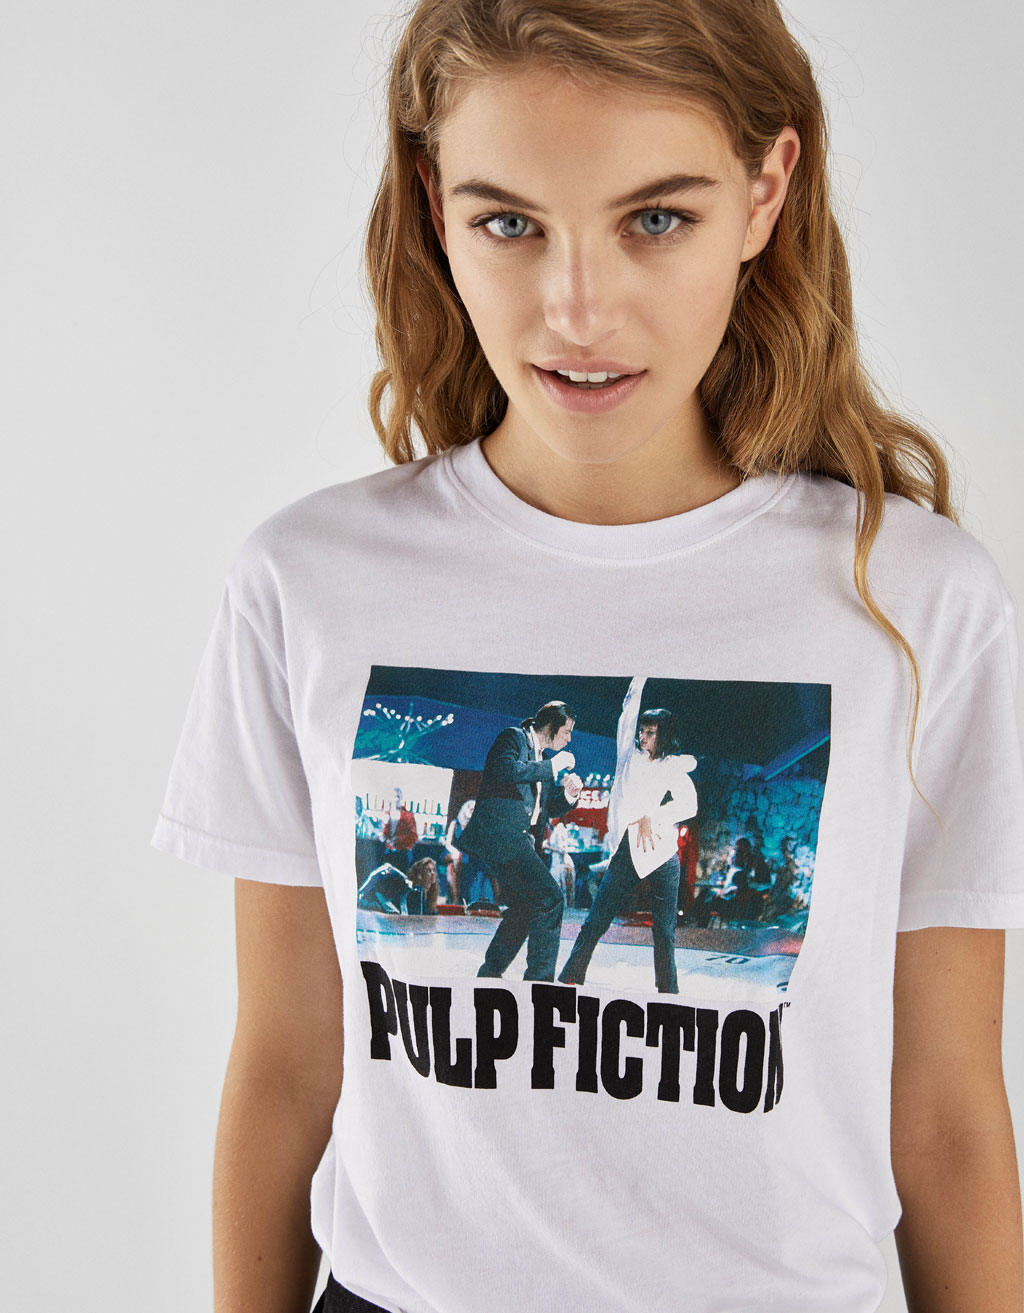 Pulp Fiction 티셔츠